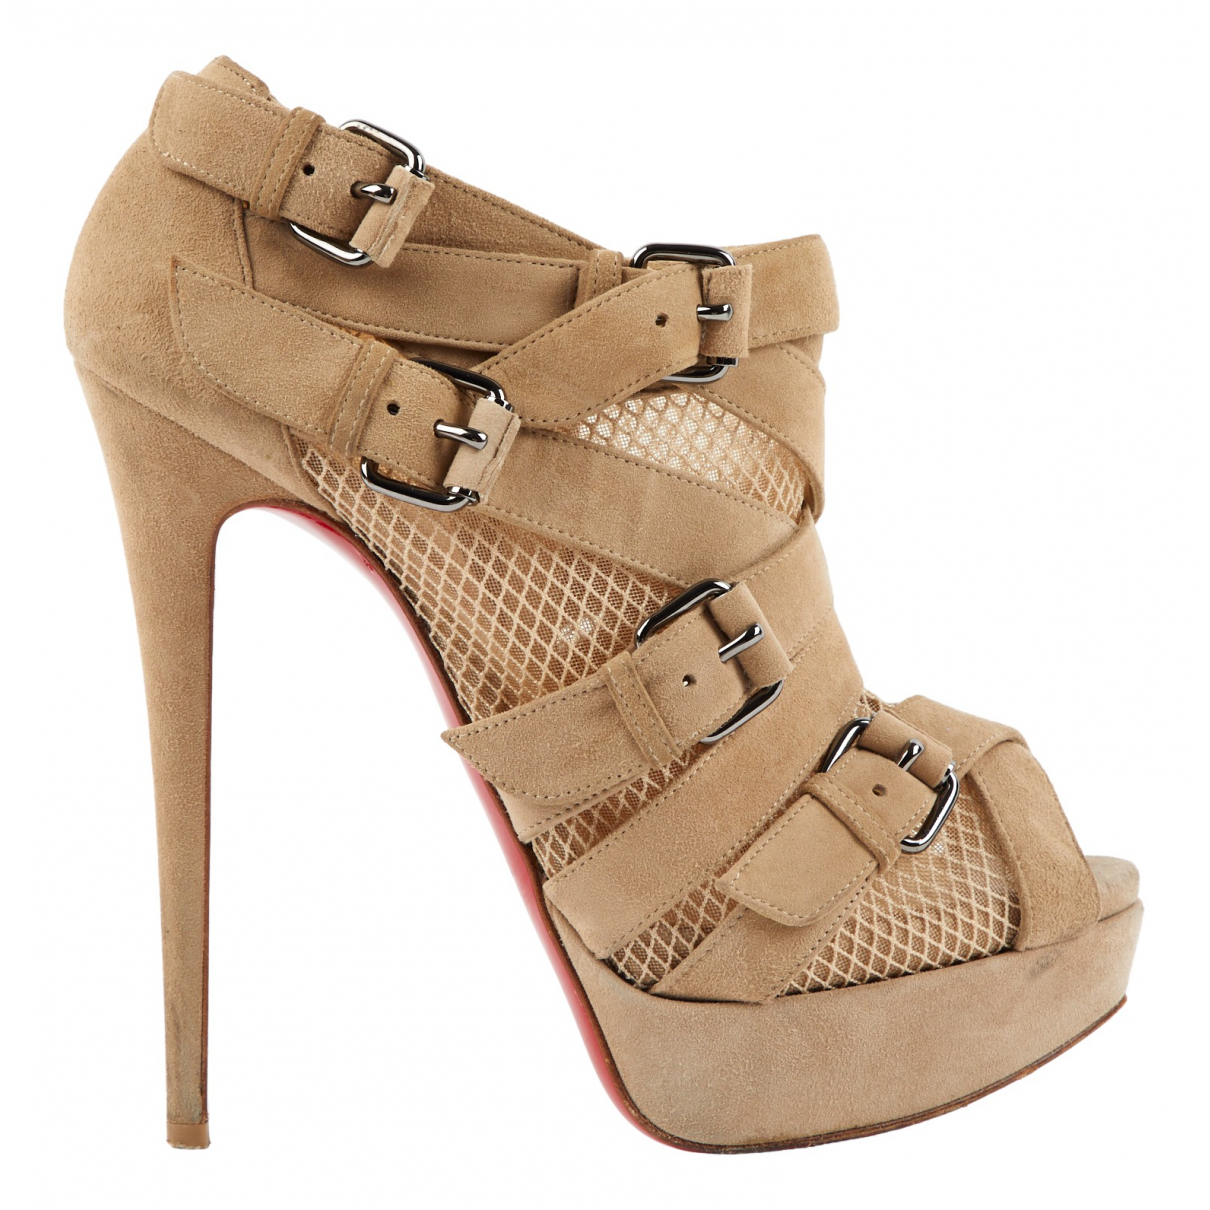 Christian Louboutin \N Beige Suede Ankle boots for Women 39 EU